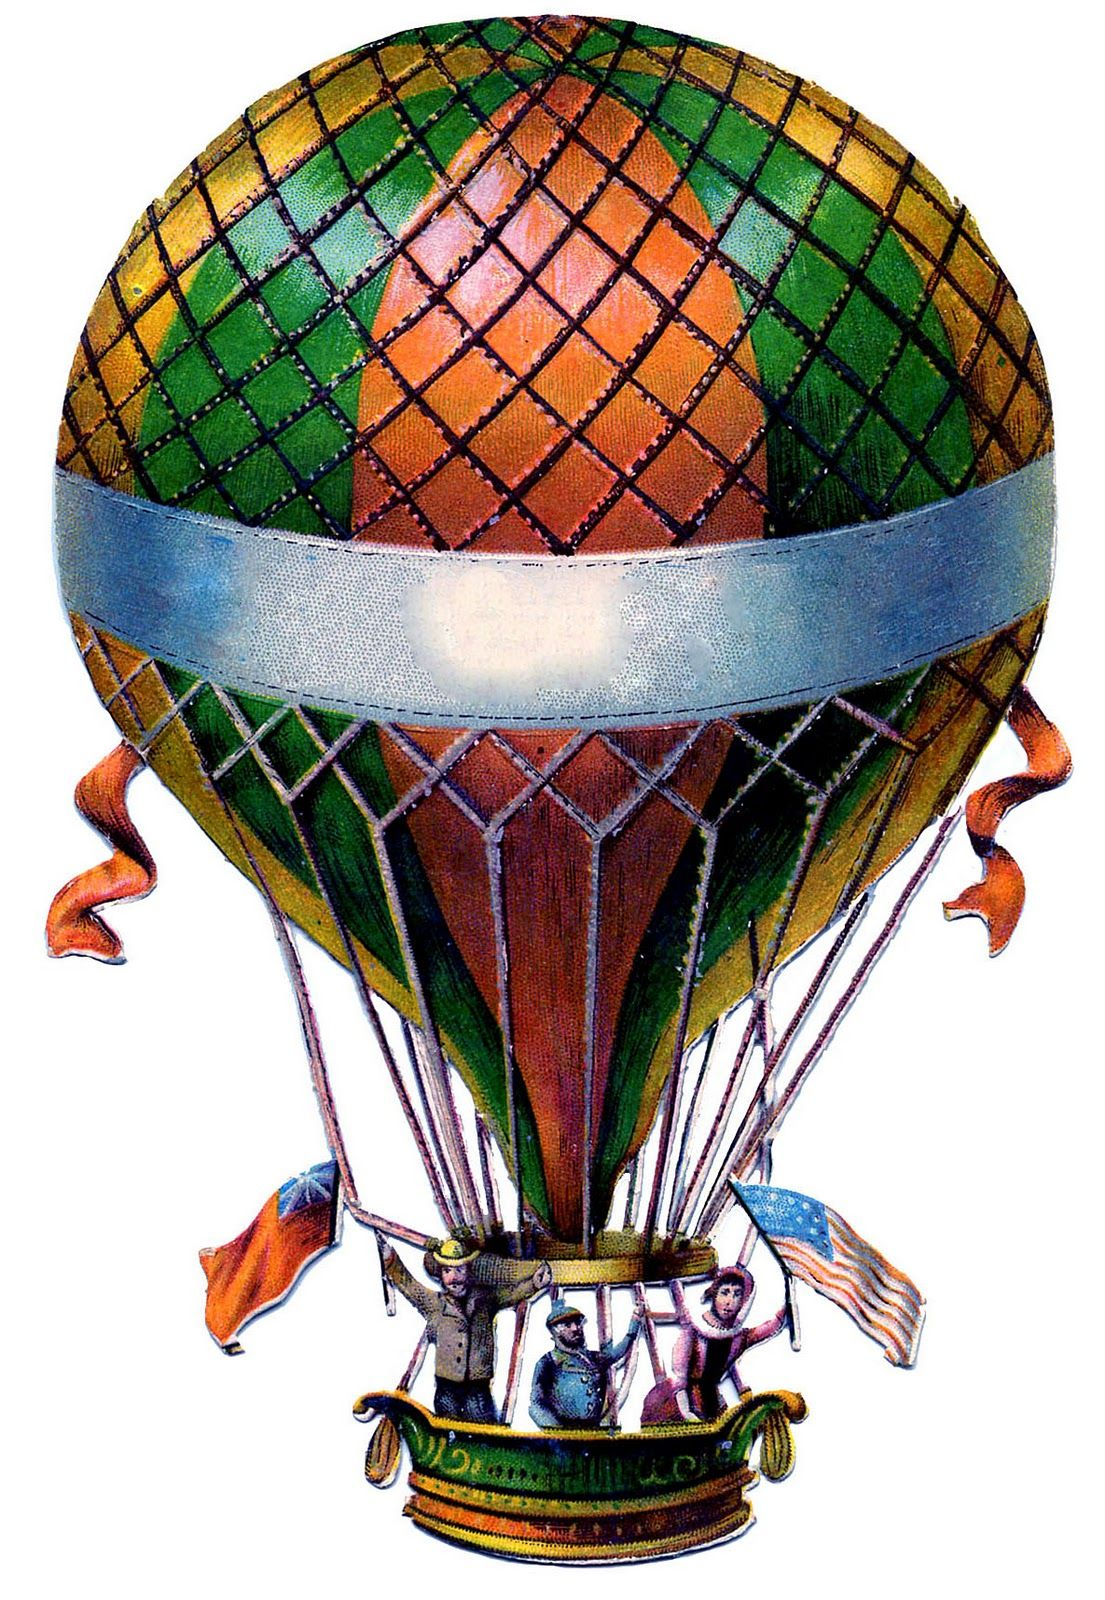 Antique graphic hot balloon. Air clipart old fashioned